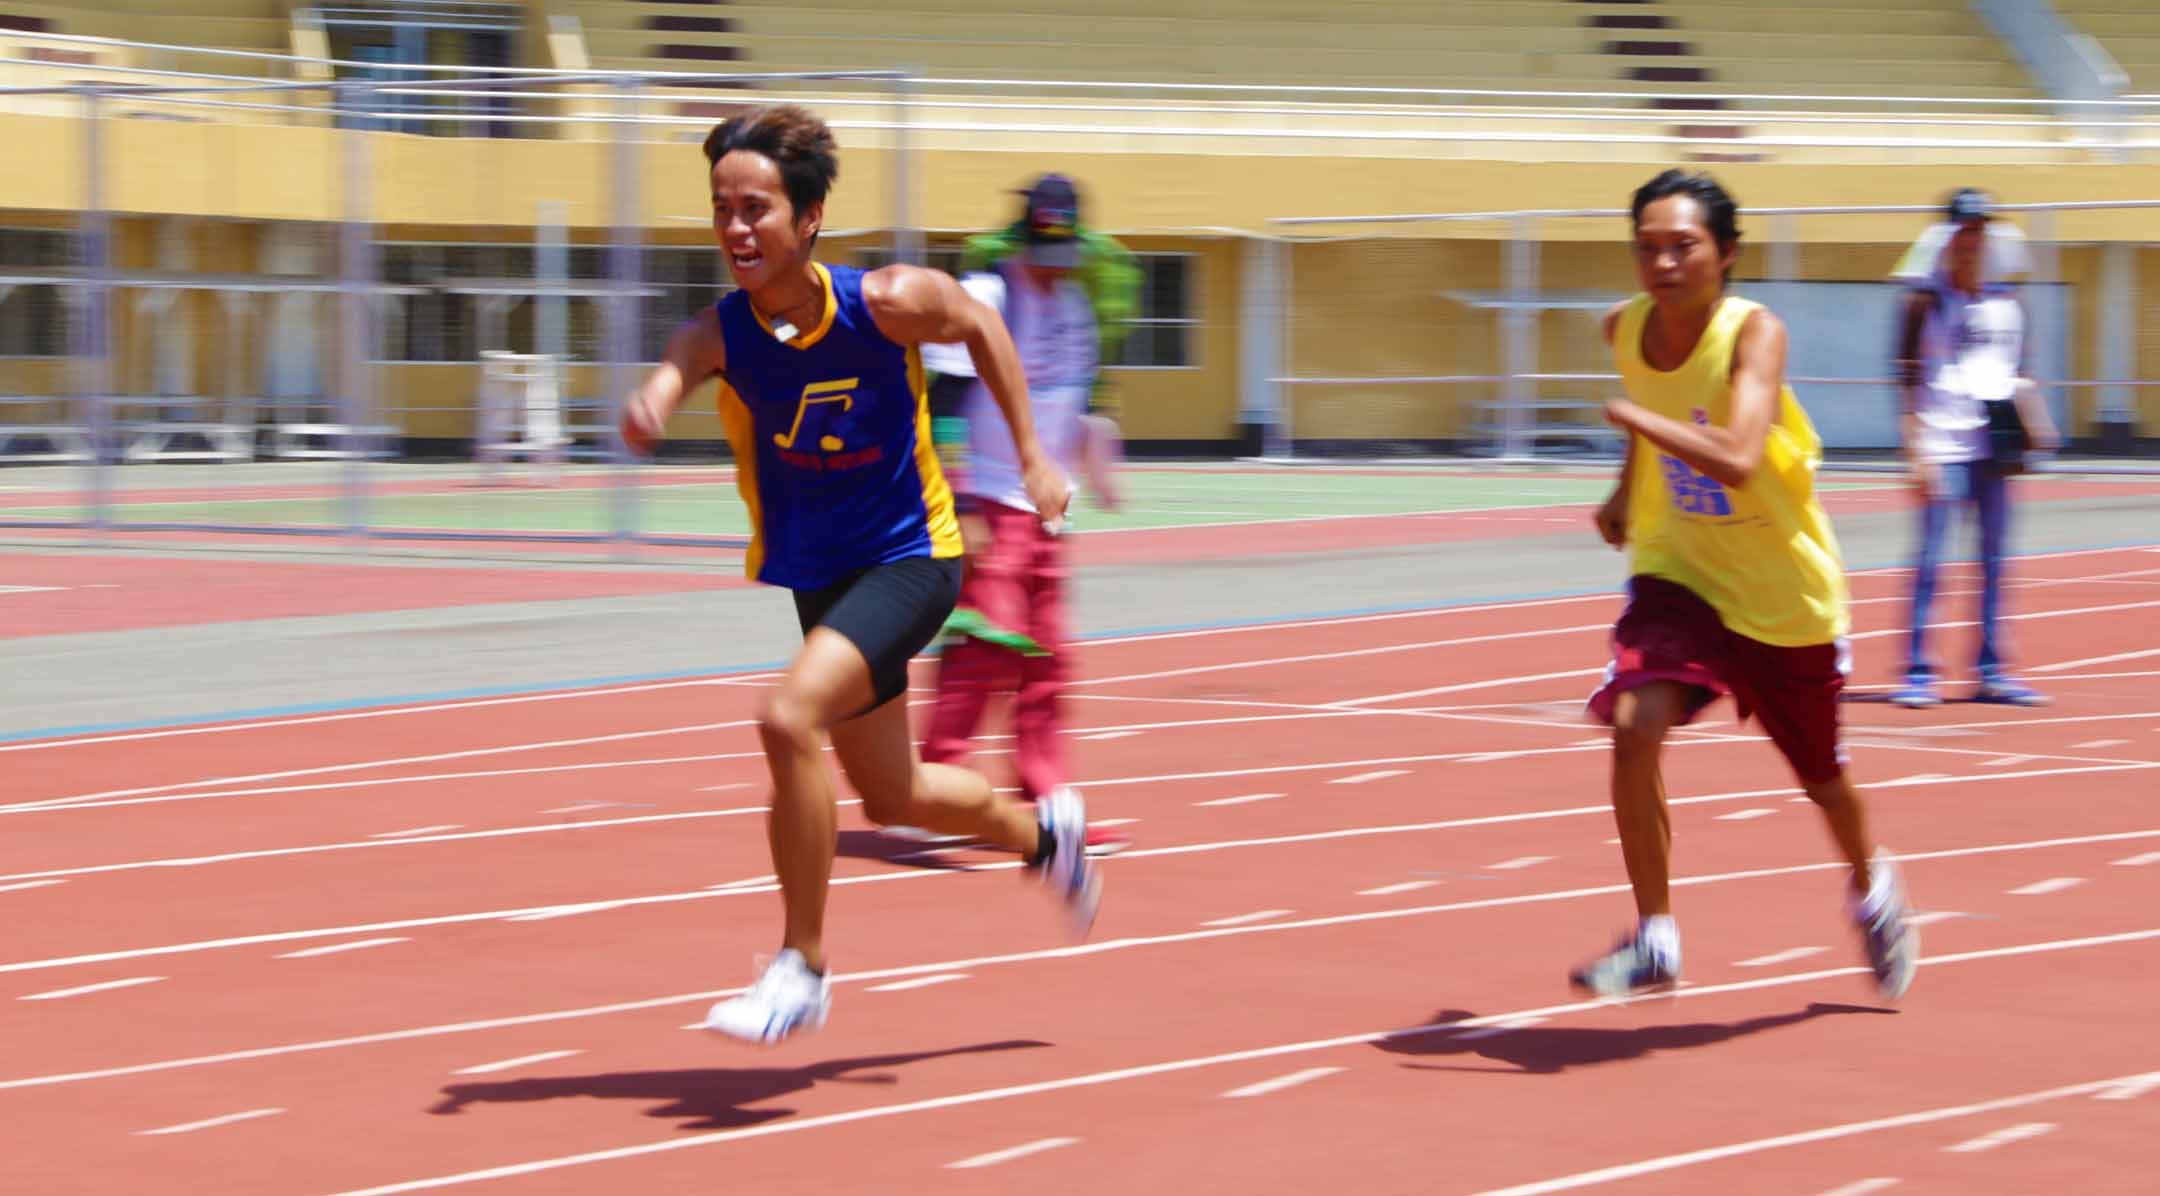 web_paralympics running without limbs